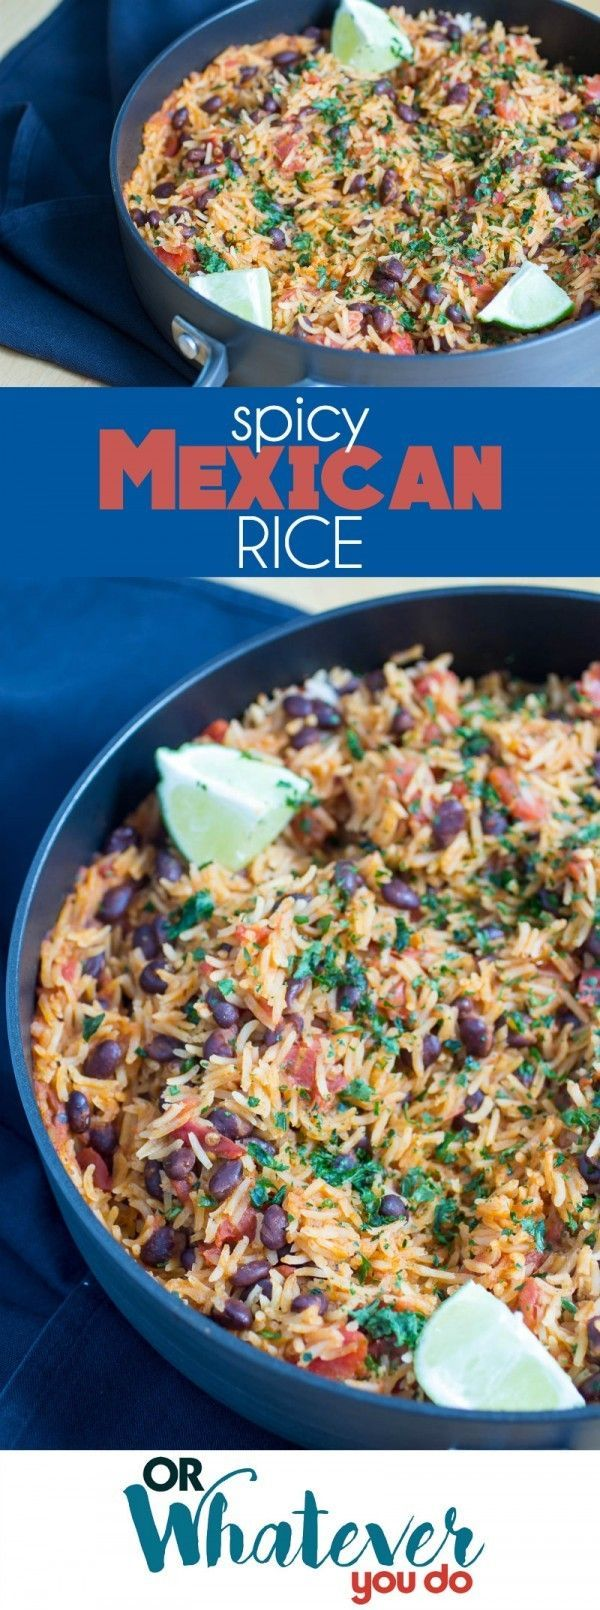 My Spicy One-Pot Mexican Rice is a quick and easy side dish that is packed with flavor, and uses some simple dump and go ingredients that'll leave you wondering how you ever lived without this one!